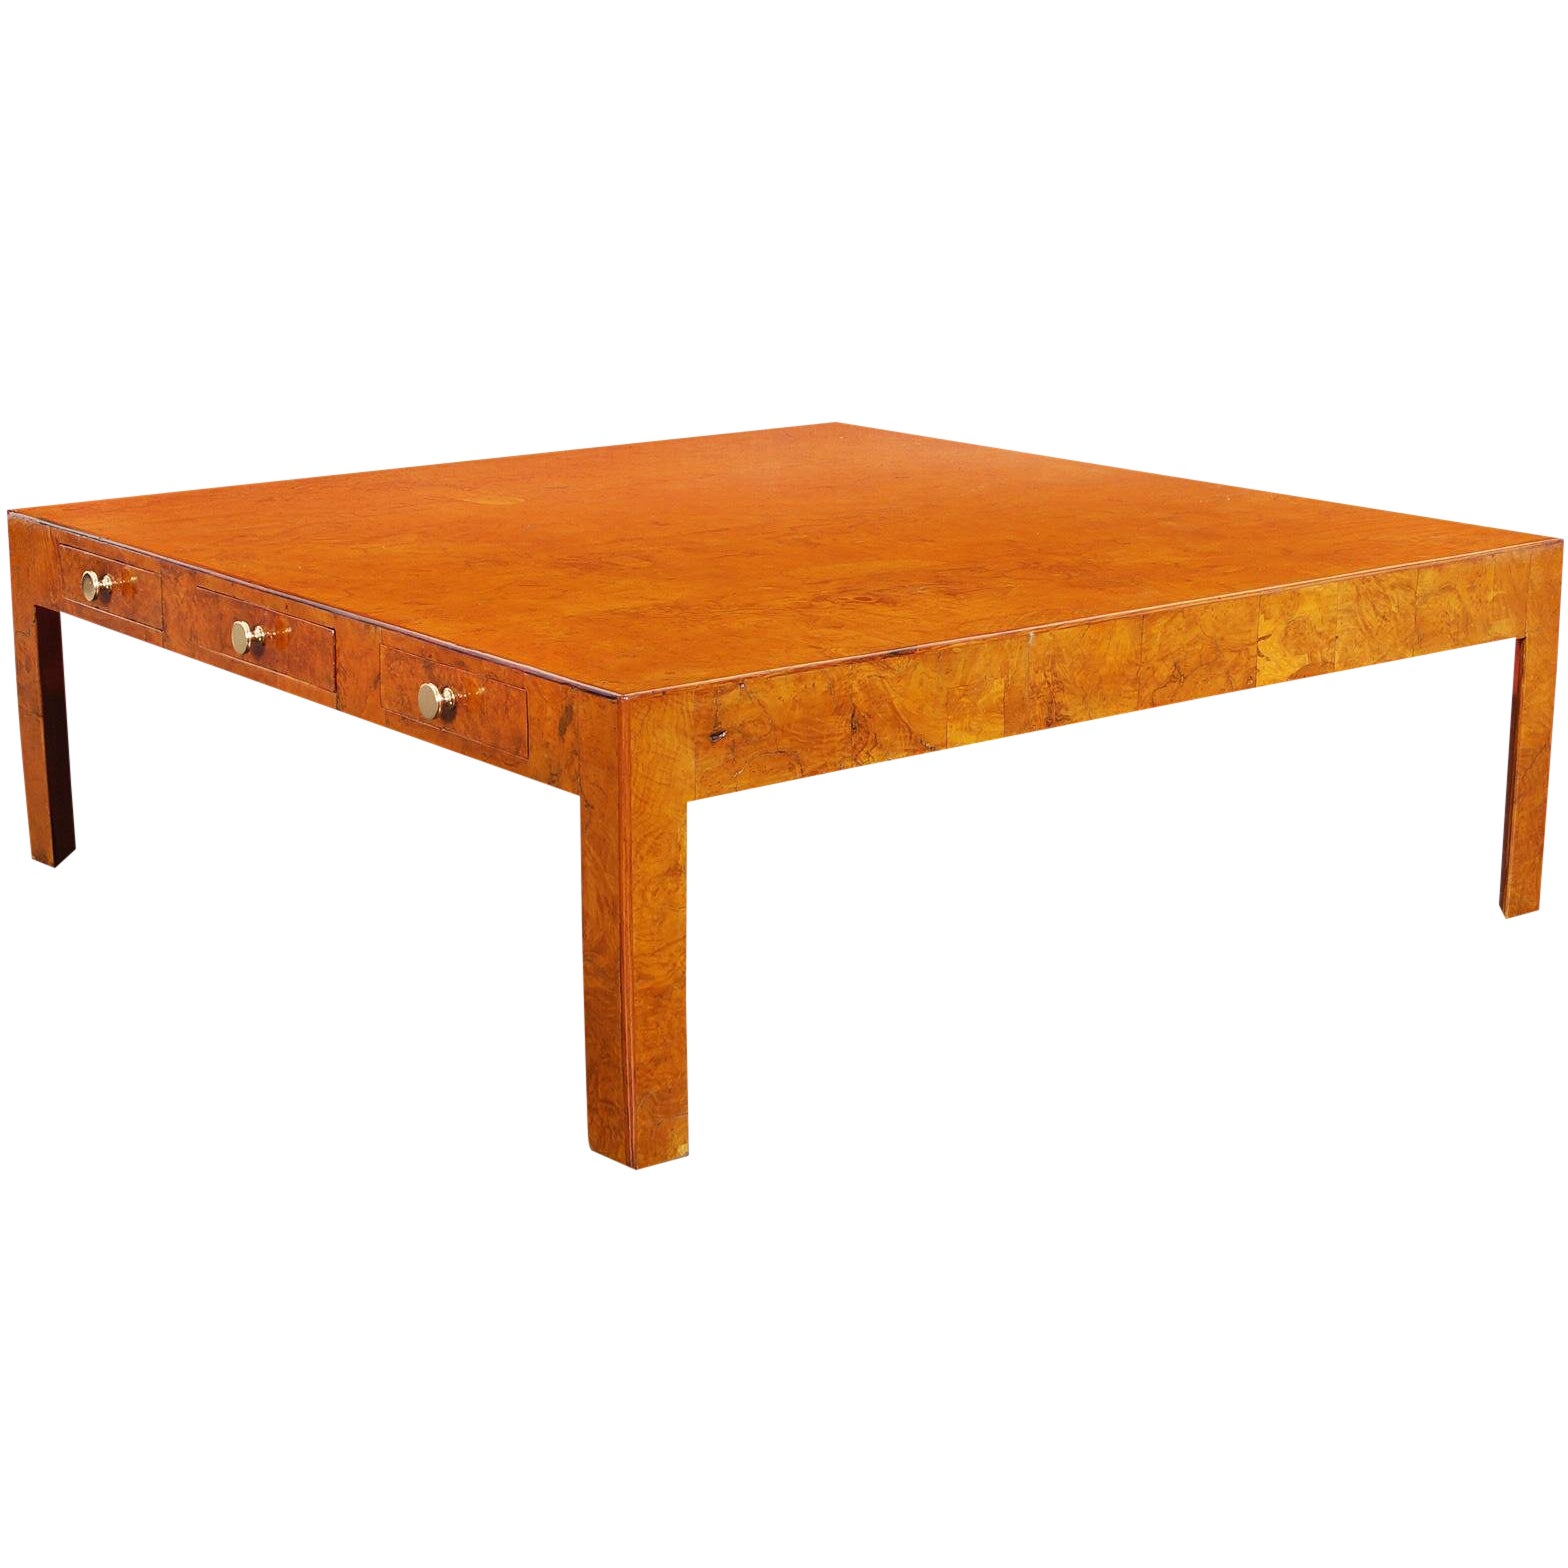 Vintage italian burl wood coffee table by cannell chaffin chairish